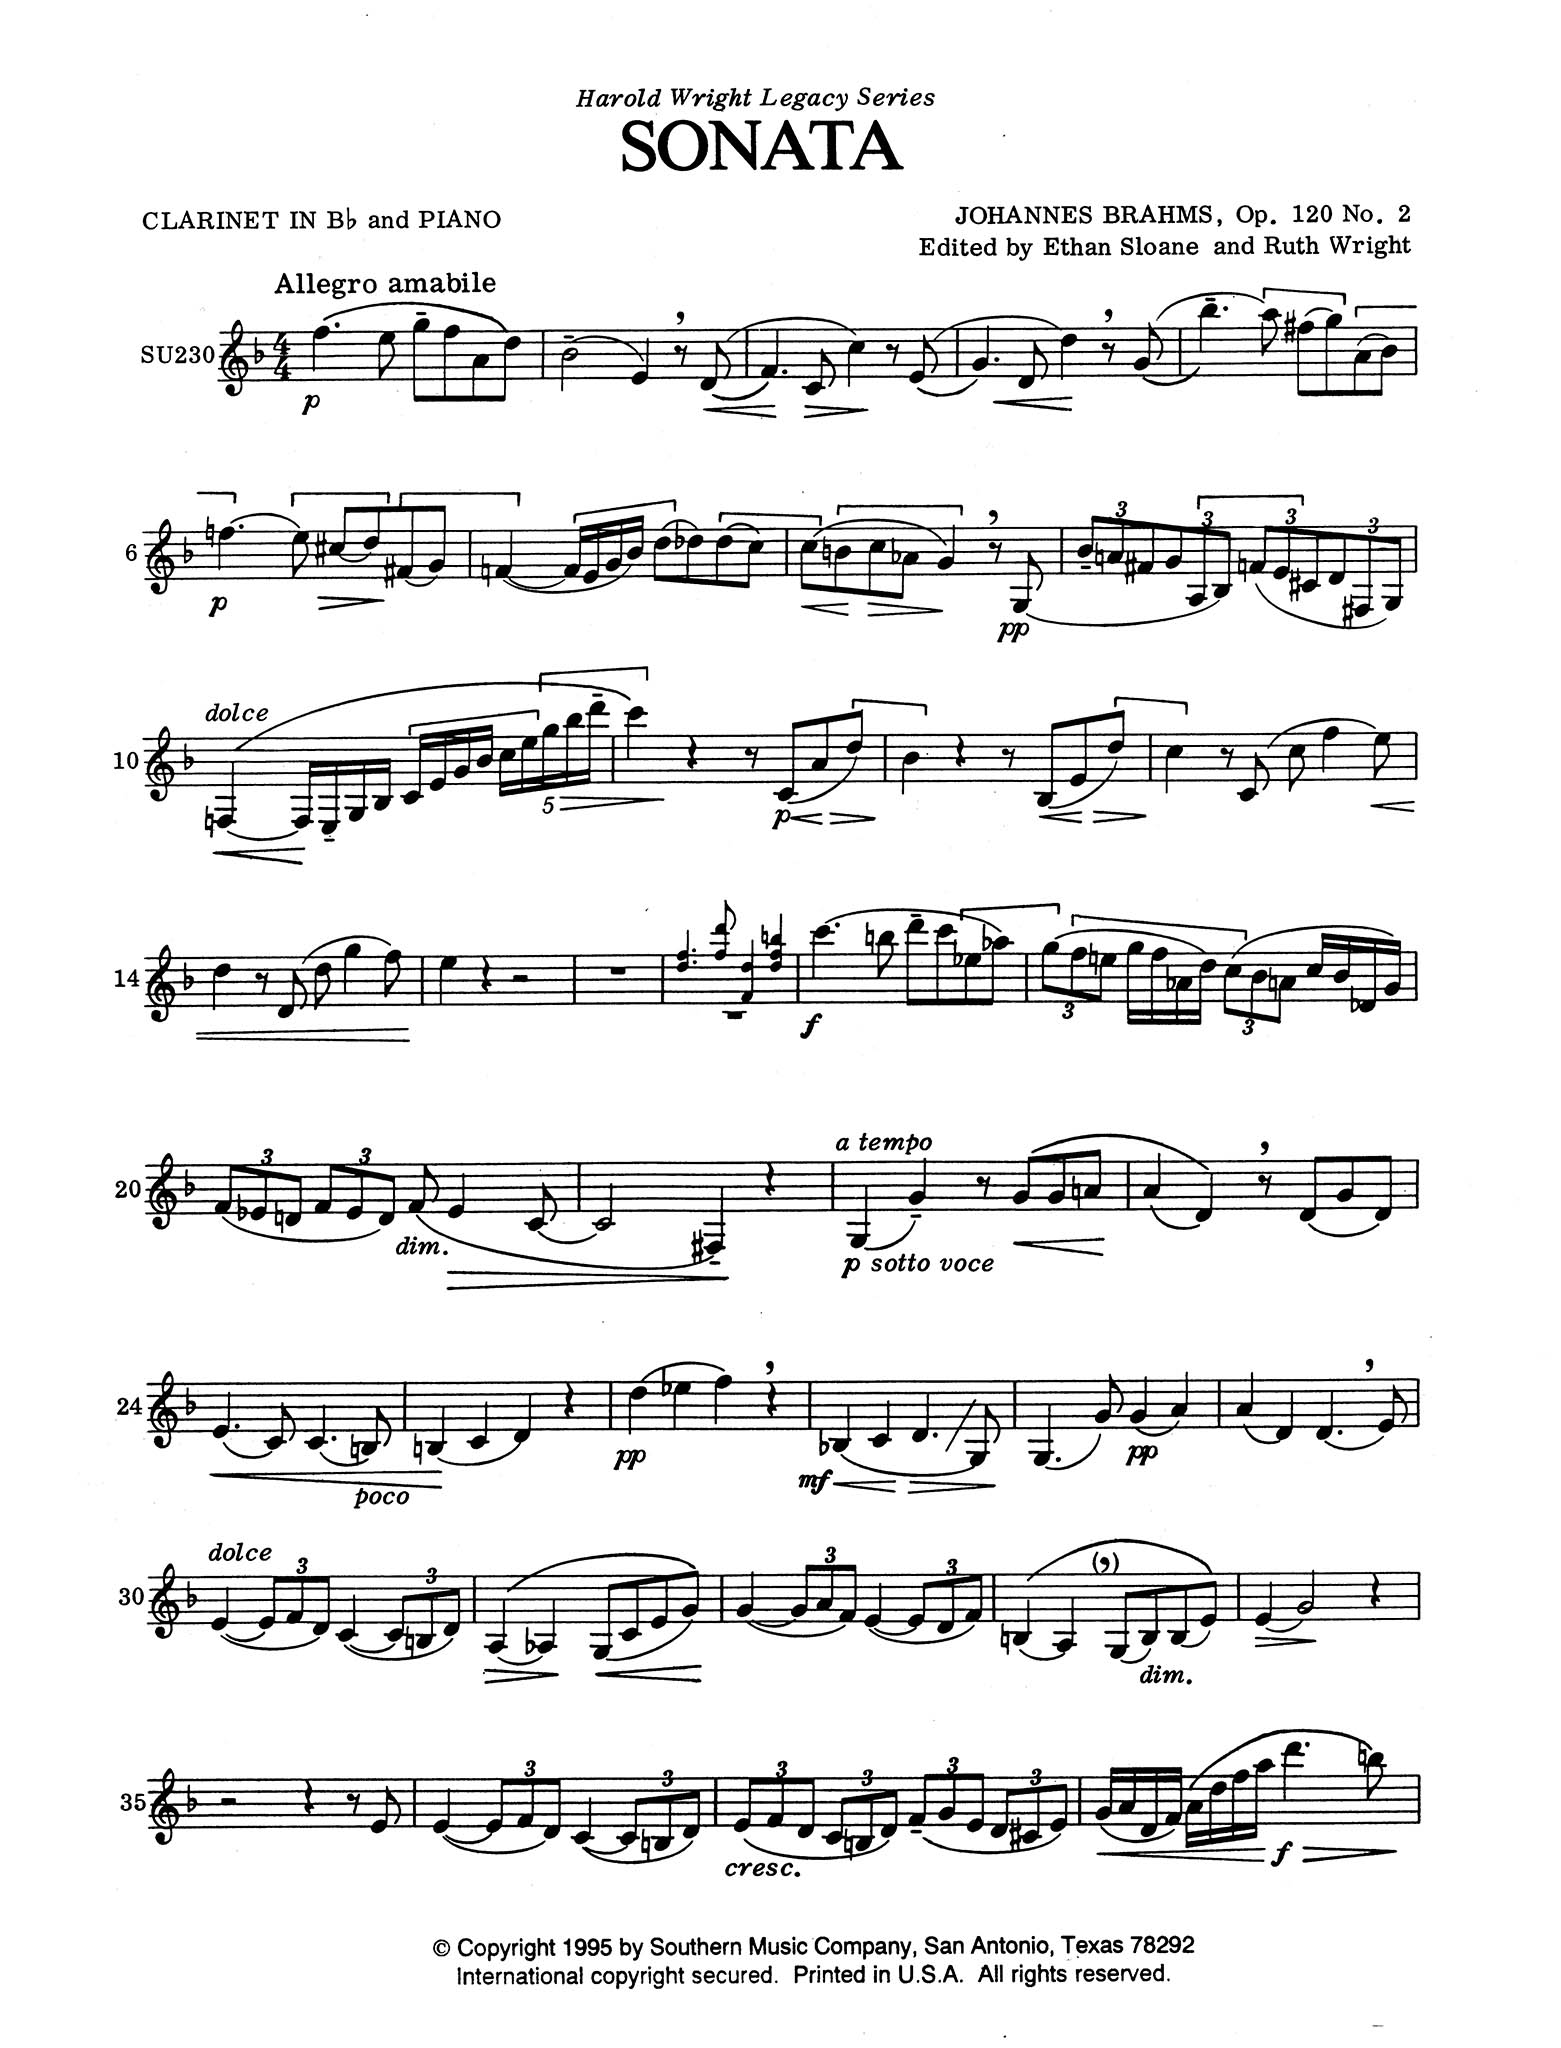 Sonata in E-flat Major, Op. 120 No. 2 Clarinet part